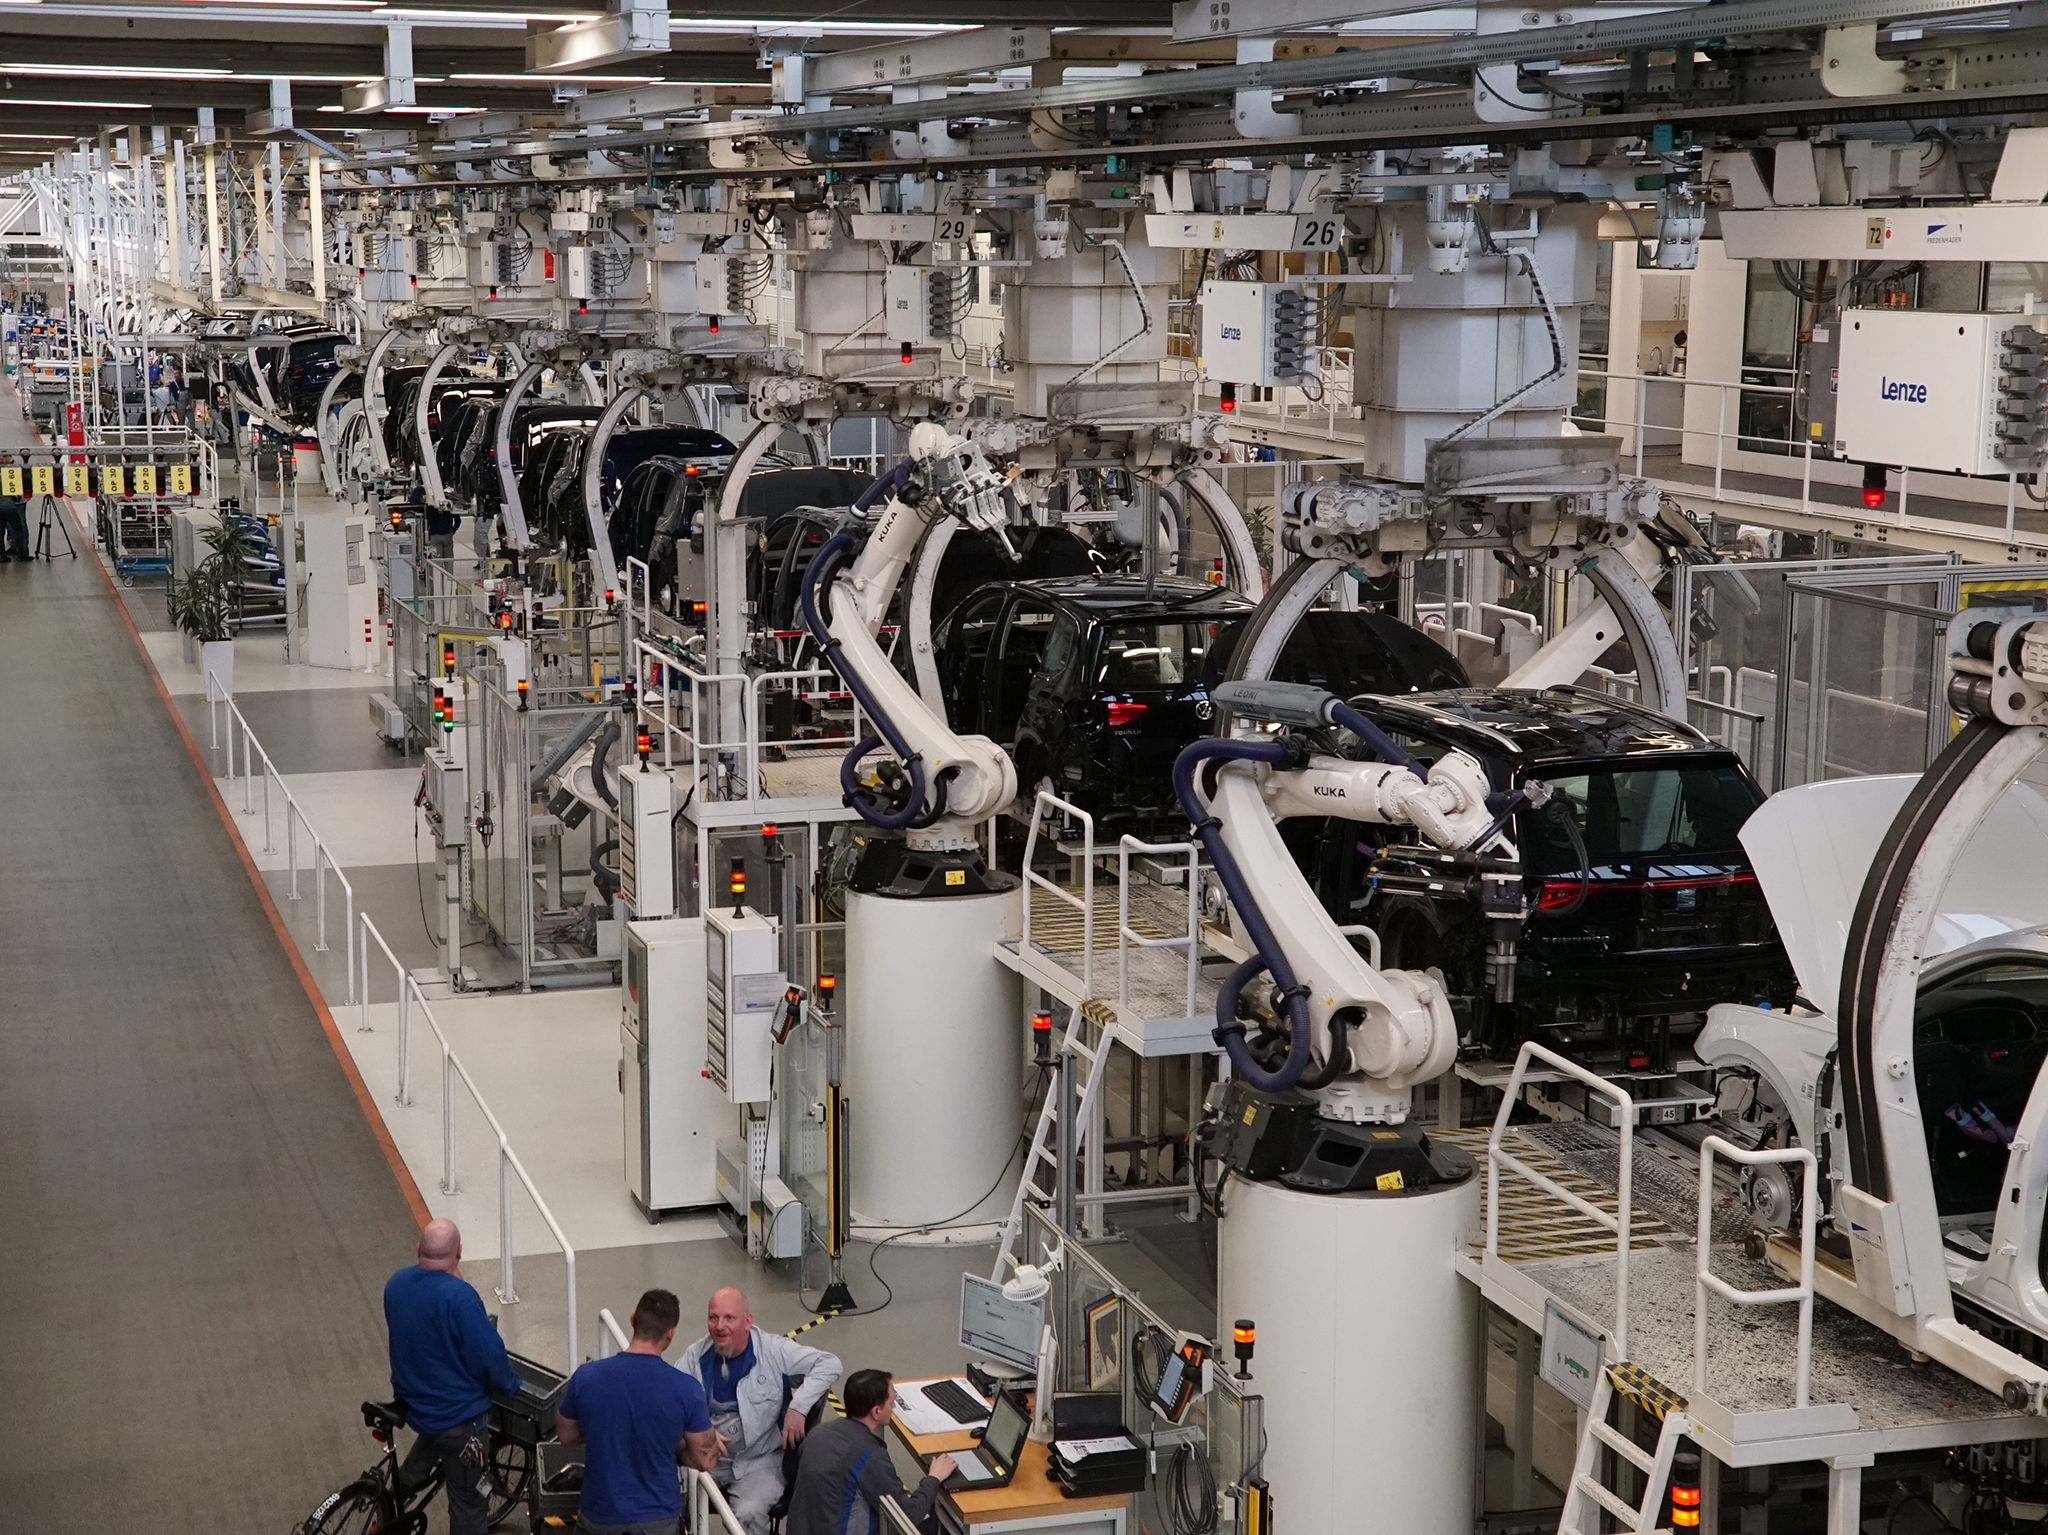 The Volkswagen production line. This image is from Superstructures: Engineering Marvels. [Photo of the day - می 2019]